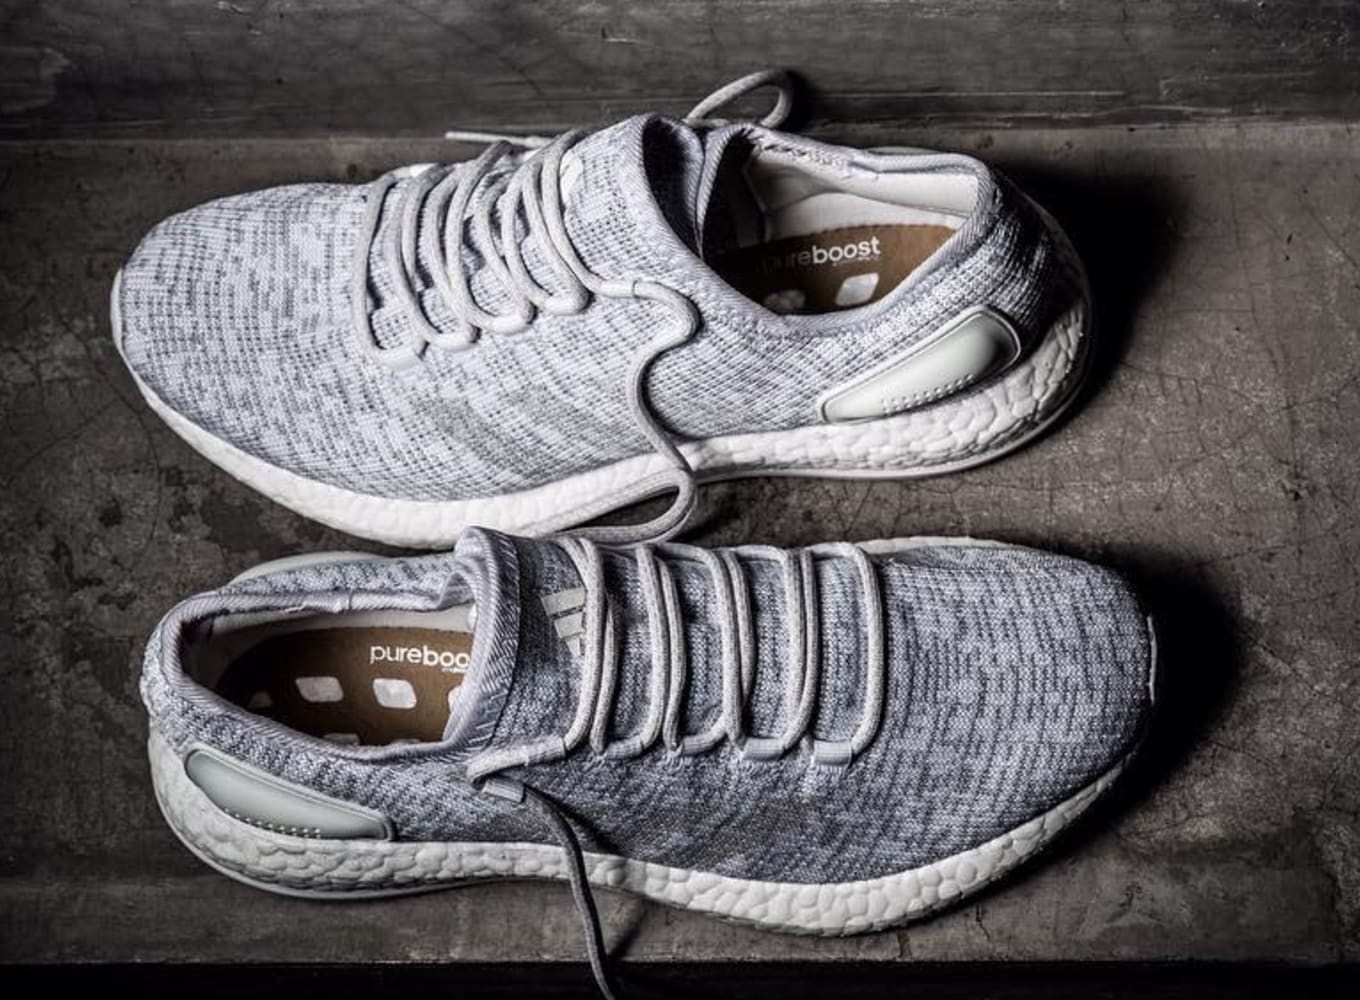 Adidas Primeknit Boost Grey White | Shoes | Adidas pure